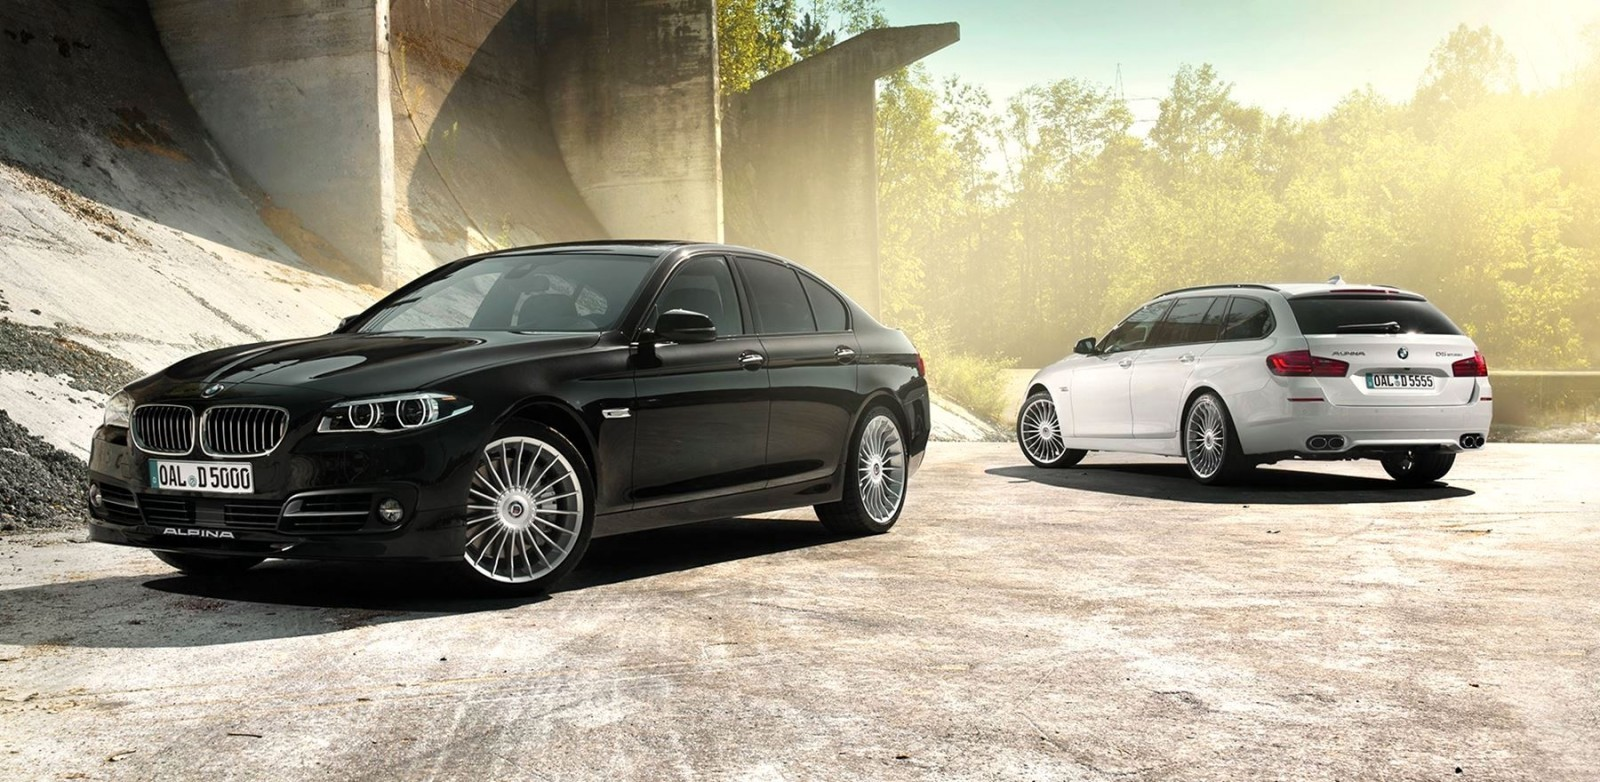 BMW_ALPINA_D5_BITURBO_03(1)